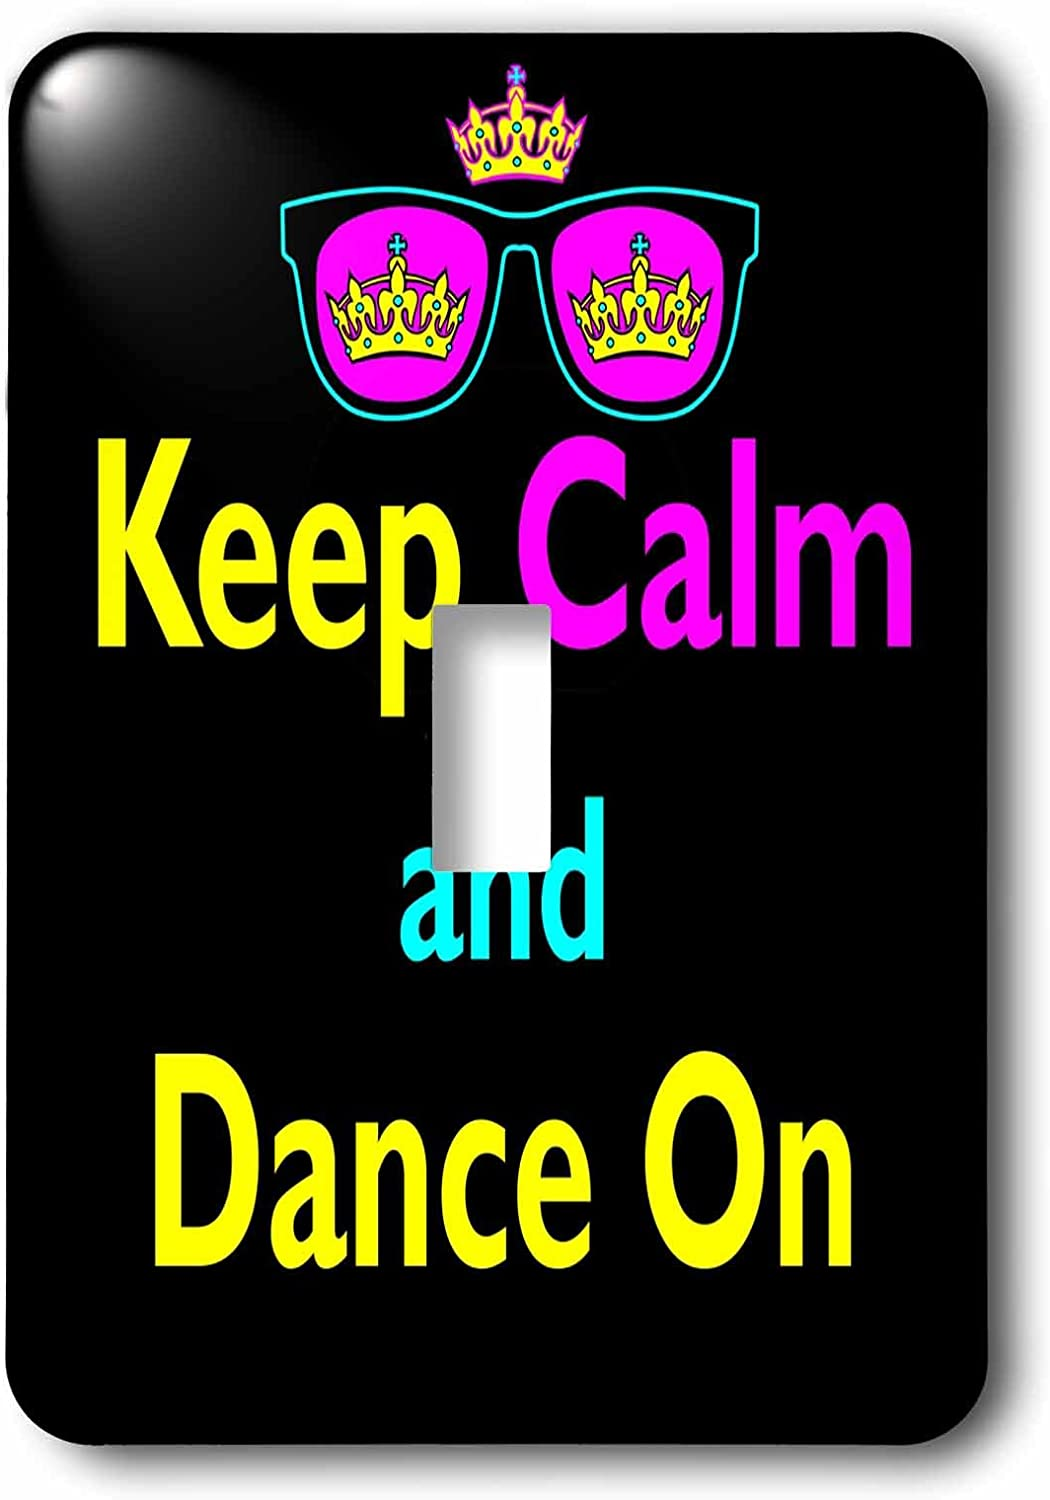 3drose Lsp 116601 1 Cmyk Keep Calm Parody Hipster Crown And Sunglasses Keep Calm And Dance On Light Switch Cover Amazon Com